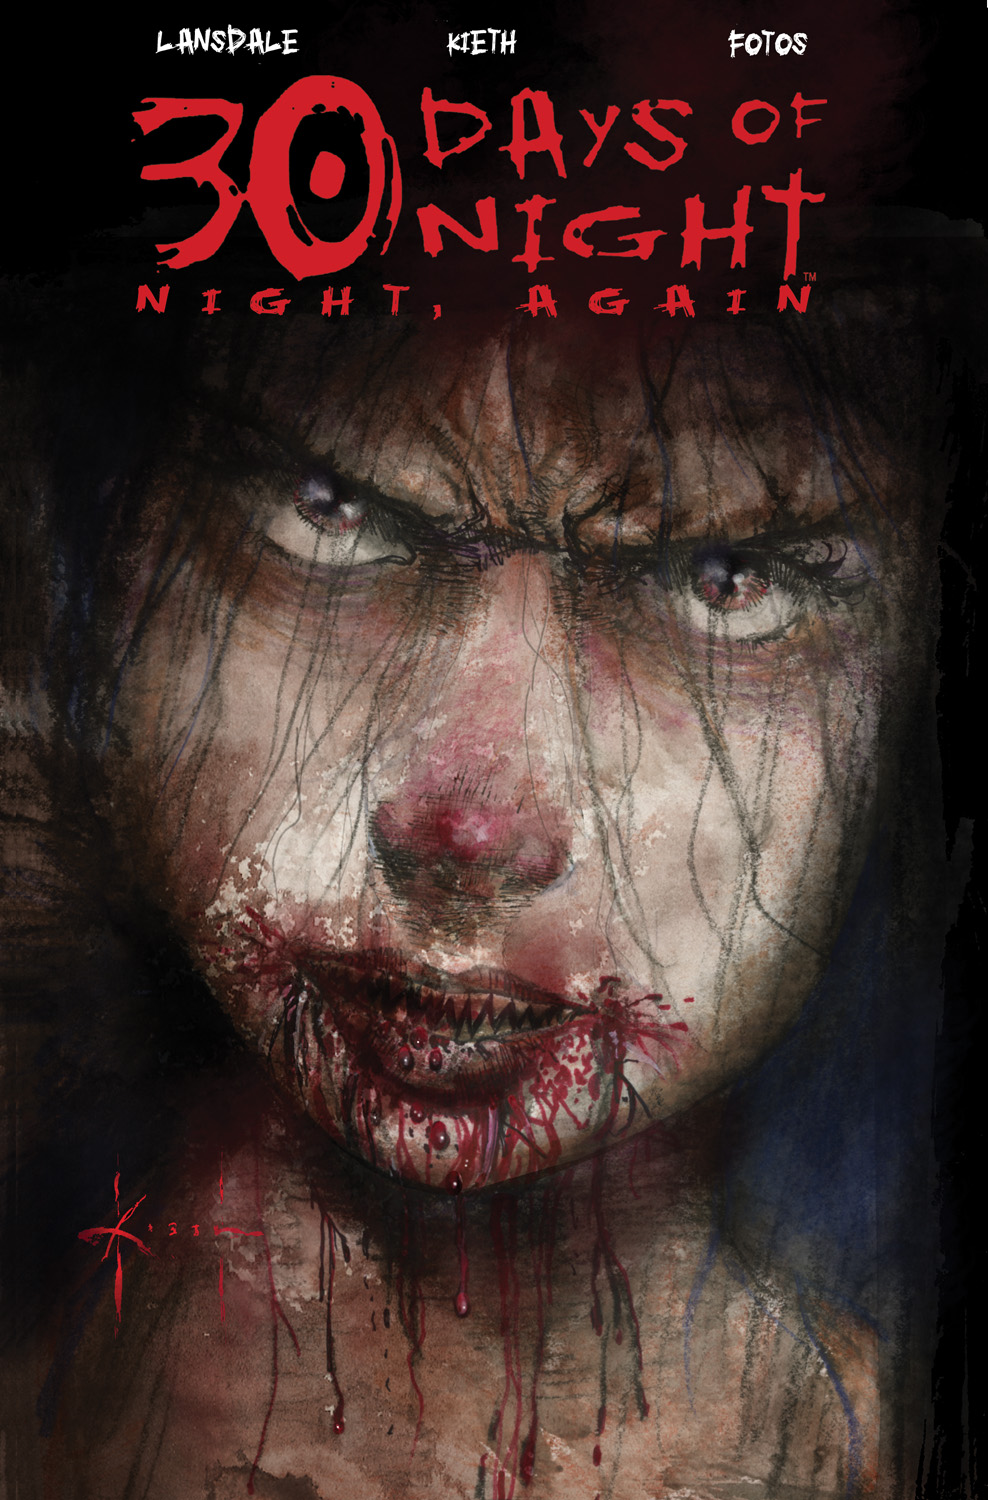 30 Days of Night: Night Again